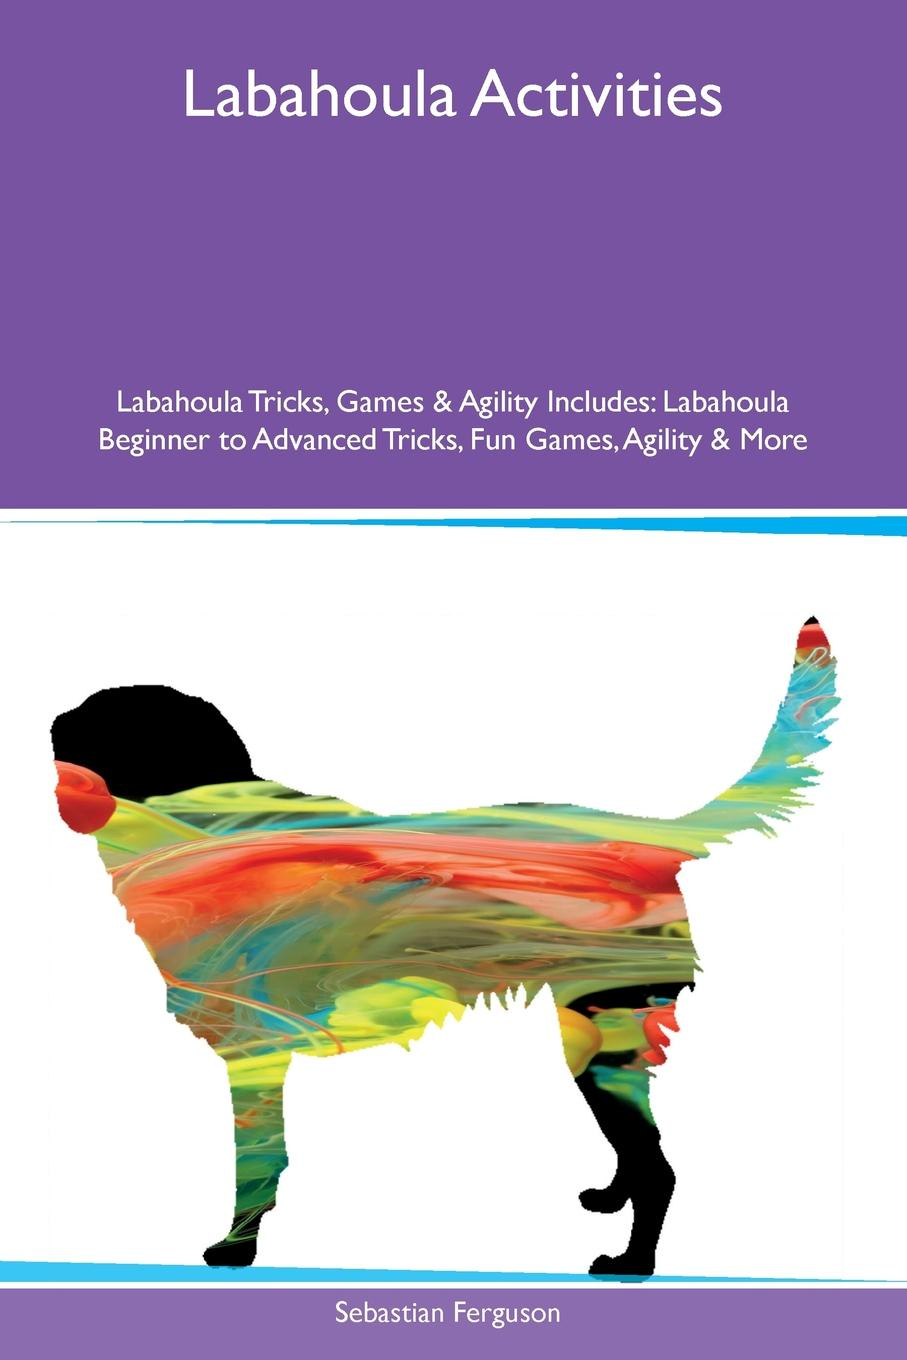 Sebastian Ferguson Labahoula Activities Tricks, Games & Agility Includes. Beginner to Advanced Fun Games, More